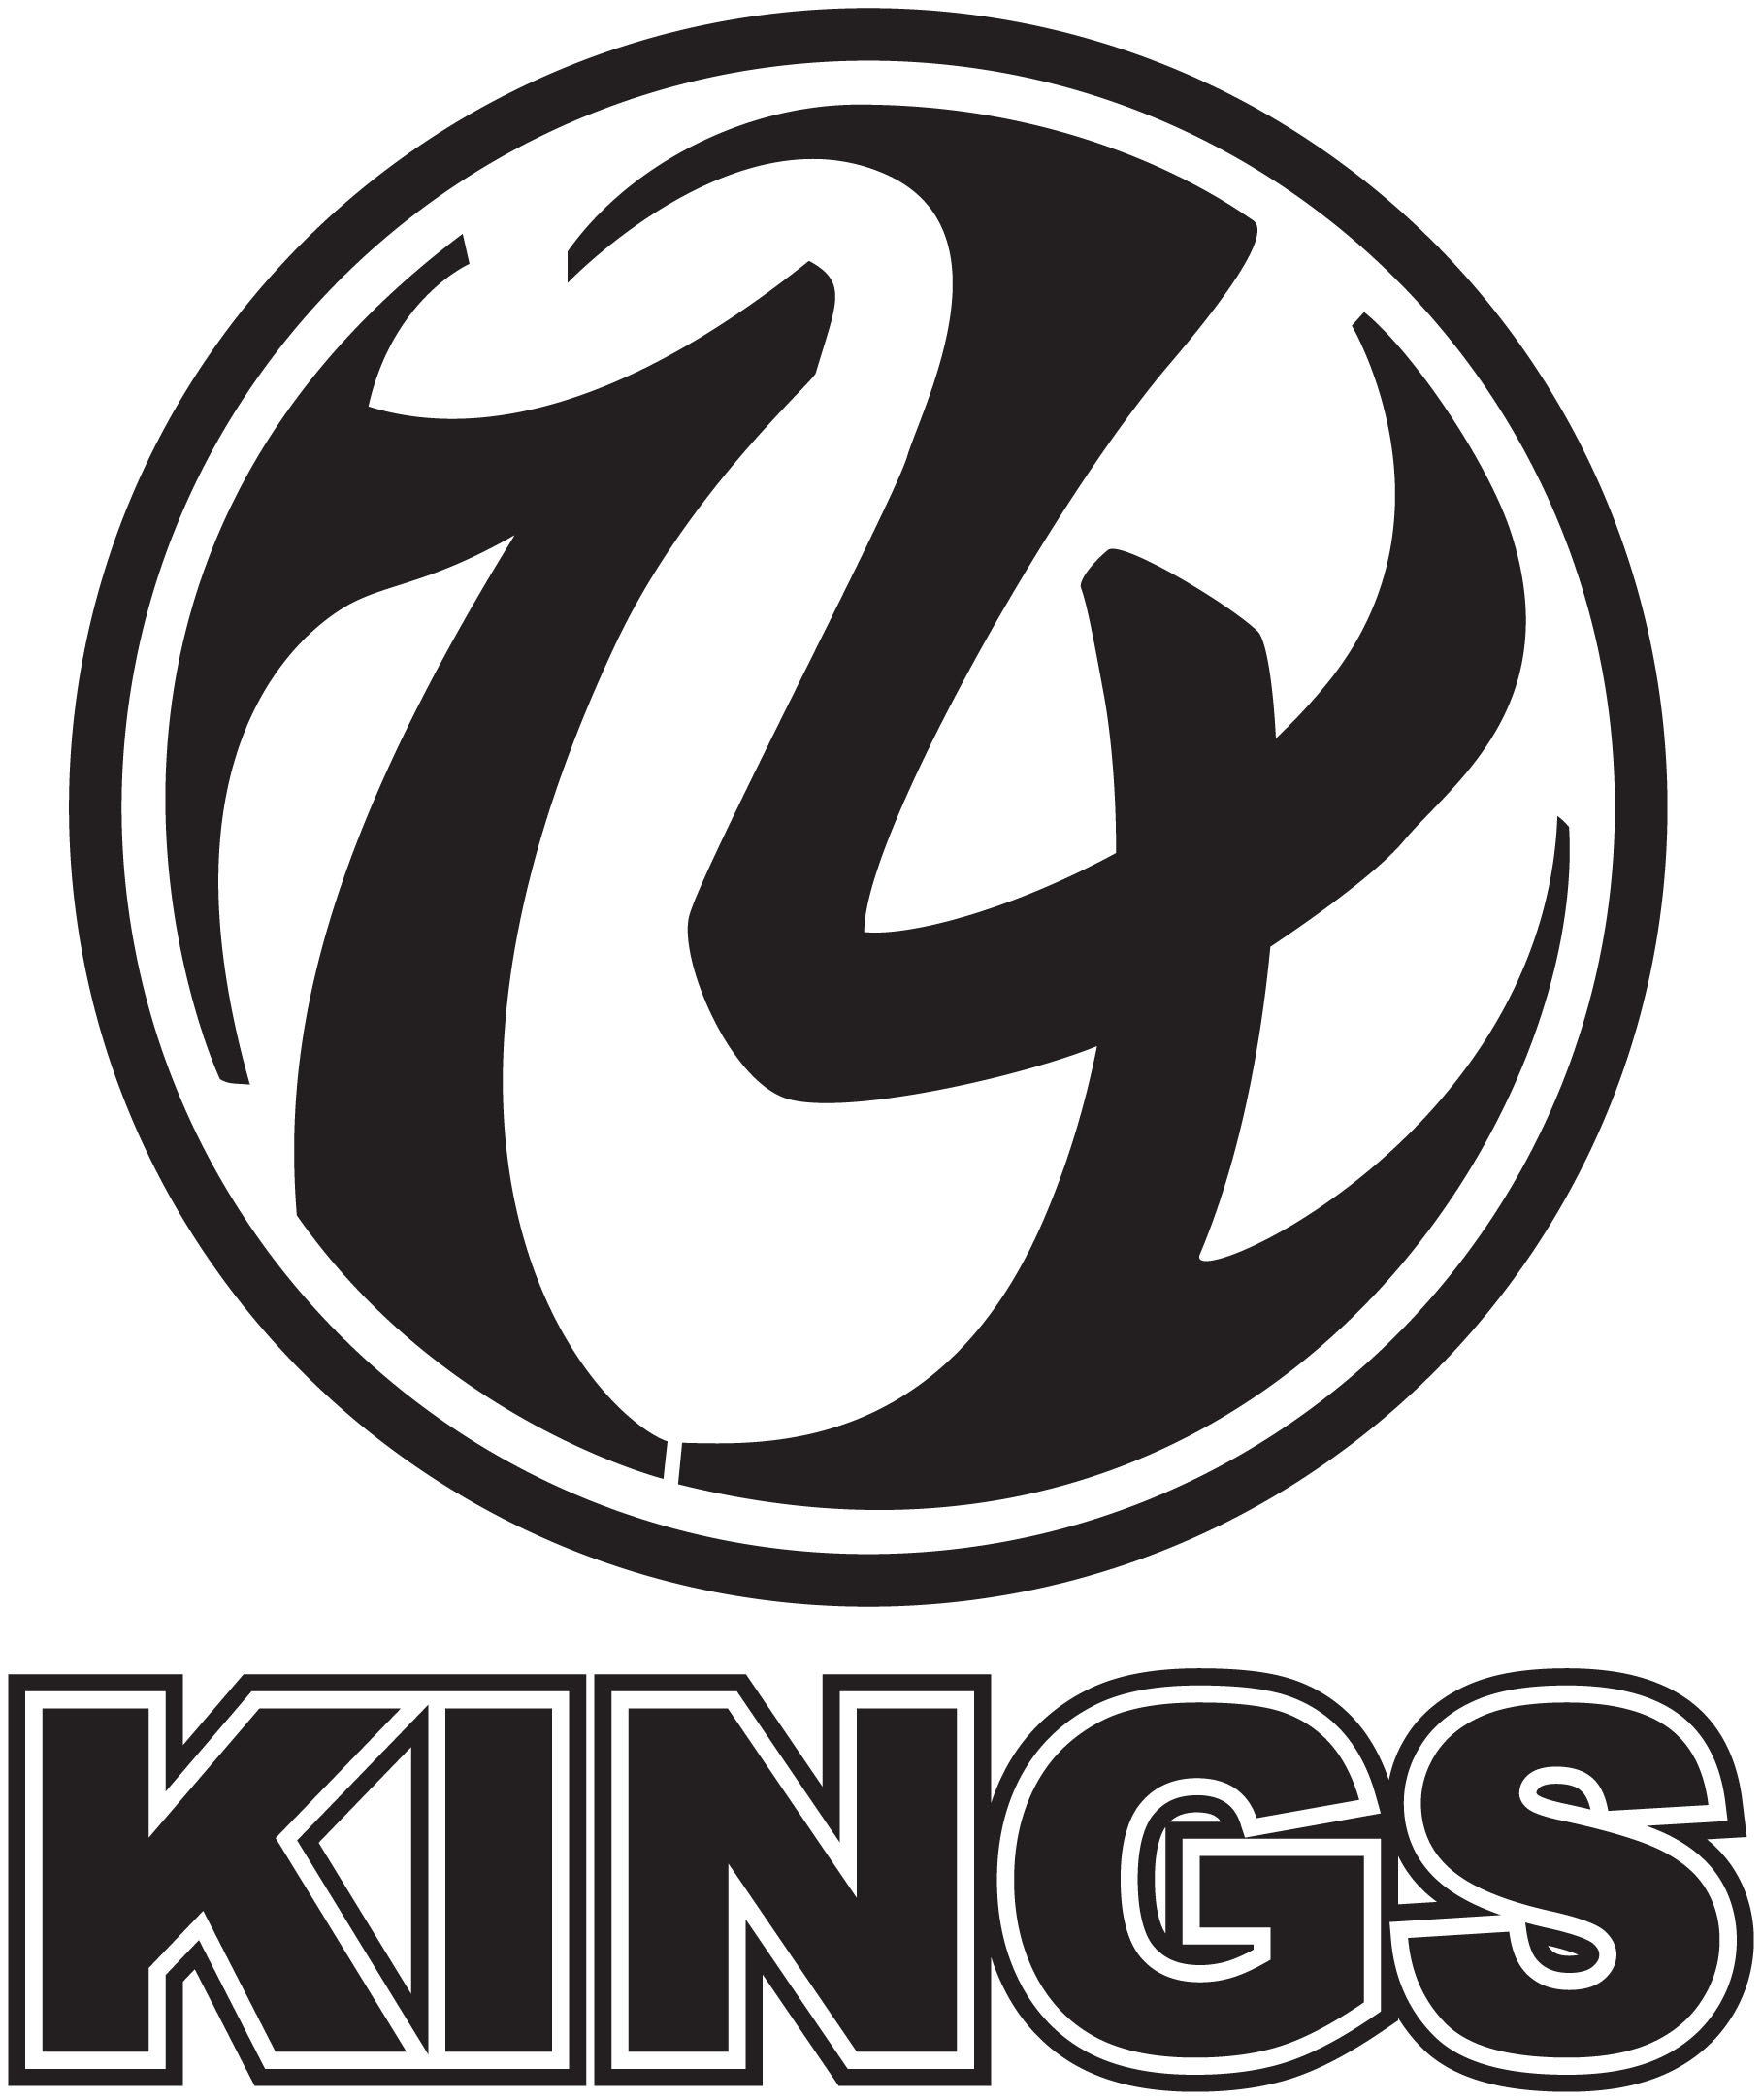 74 kings logo